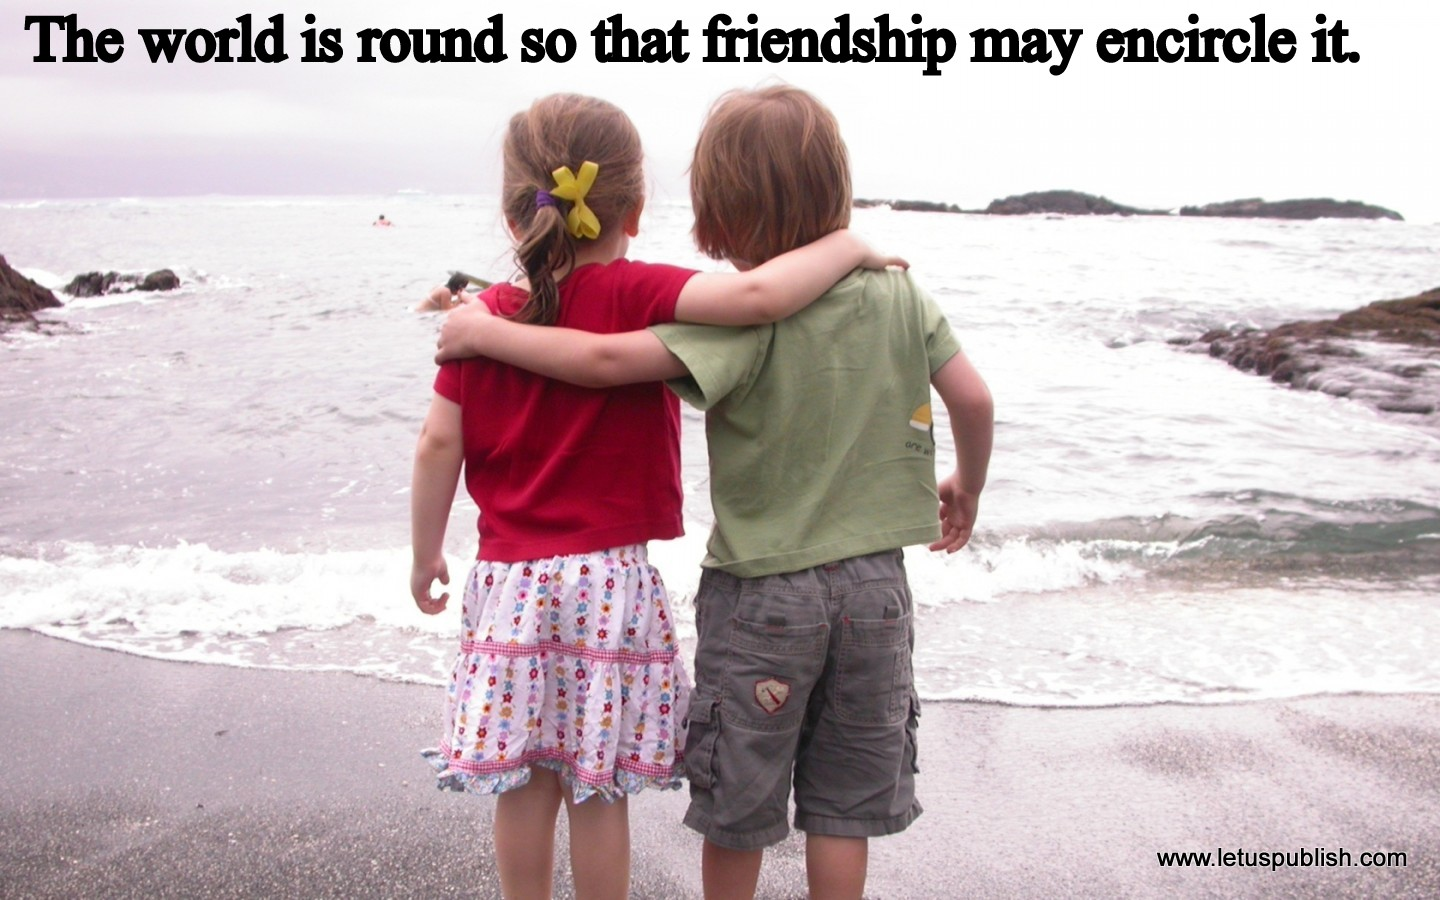 Happy friendship day latest hd wallpaper for whatsapp